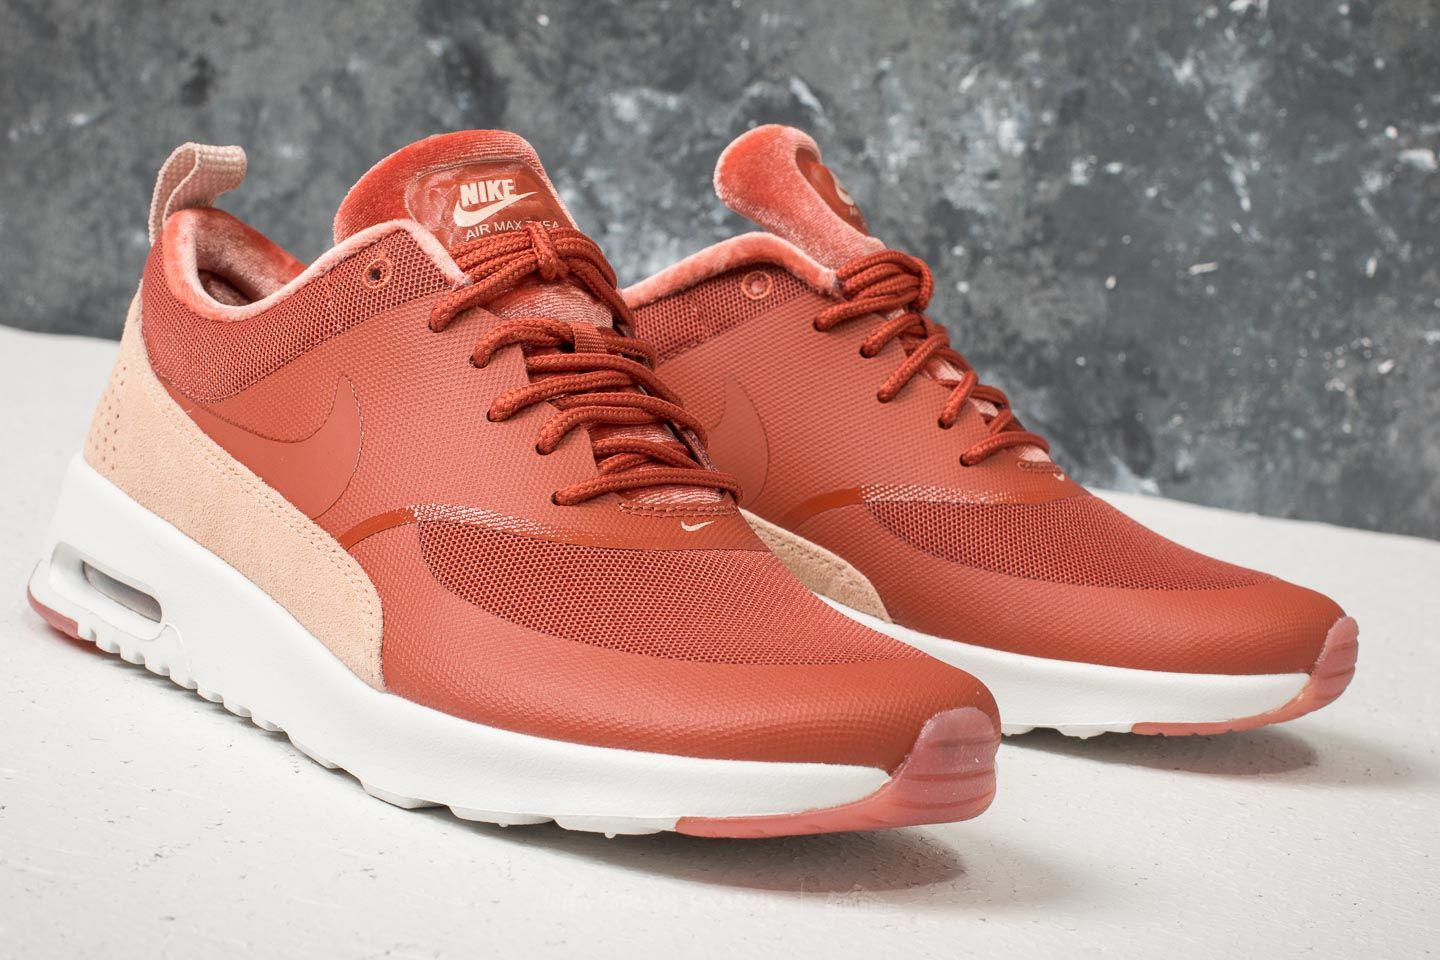 Multicolor Max Wmns Dusty Air Peach Nike Thea Lx 9I2HYWED